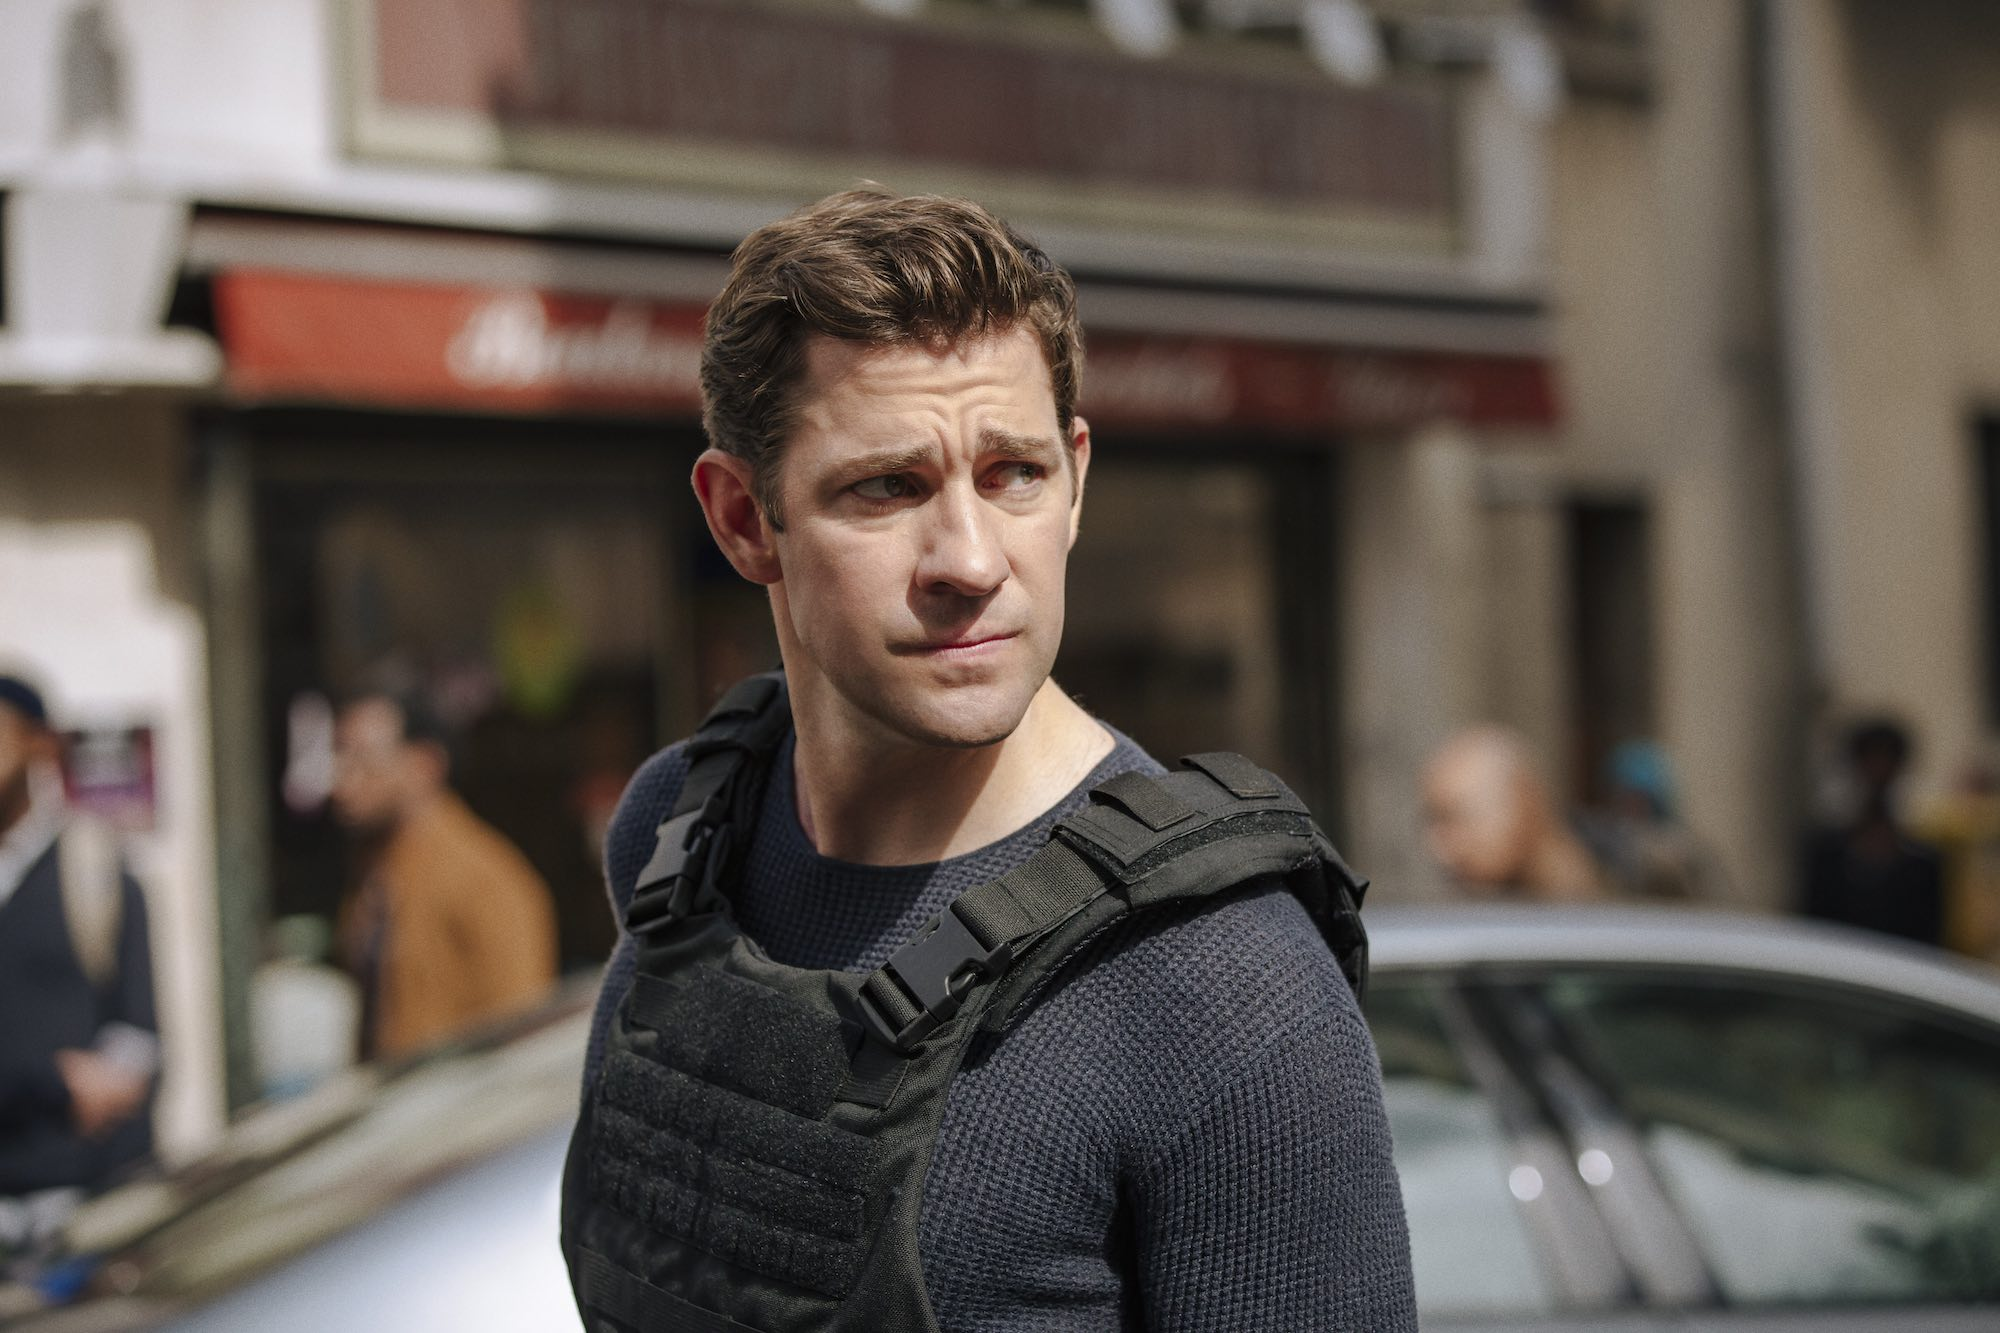 Tom Clancy's Jack Ryan to debut on Amazon Prime Video in August